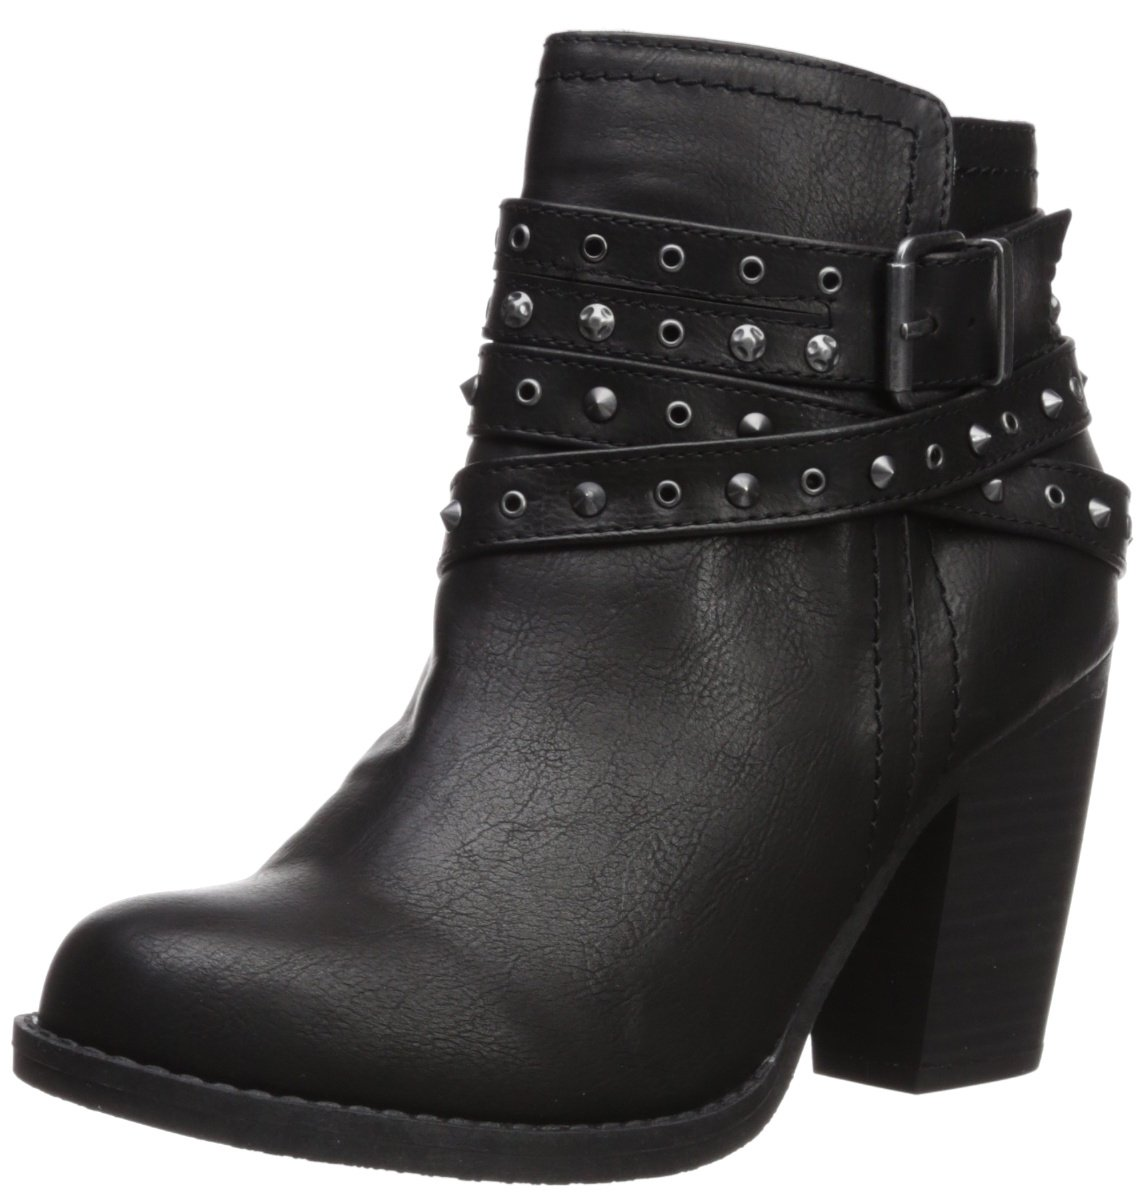 Sugar Women's Poppies Studded Multi Strap Fashion Boot B0765793FY 6 B(M) US|Black Smooth